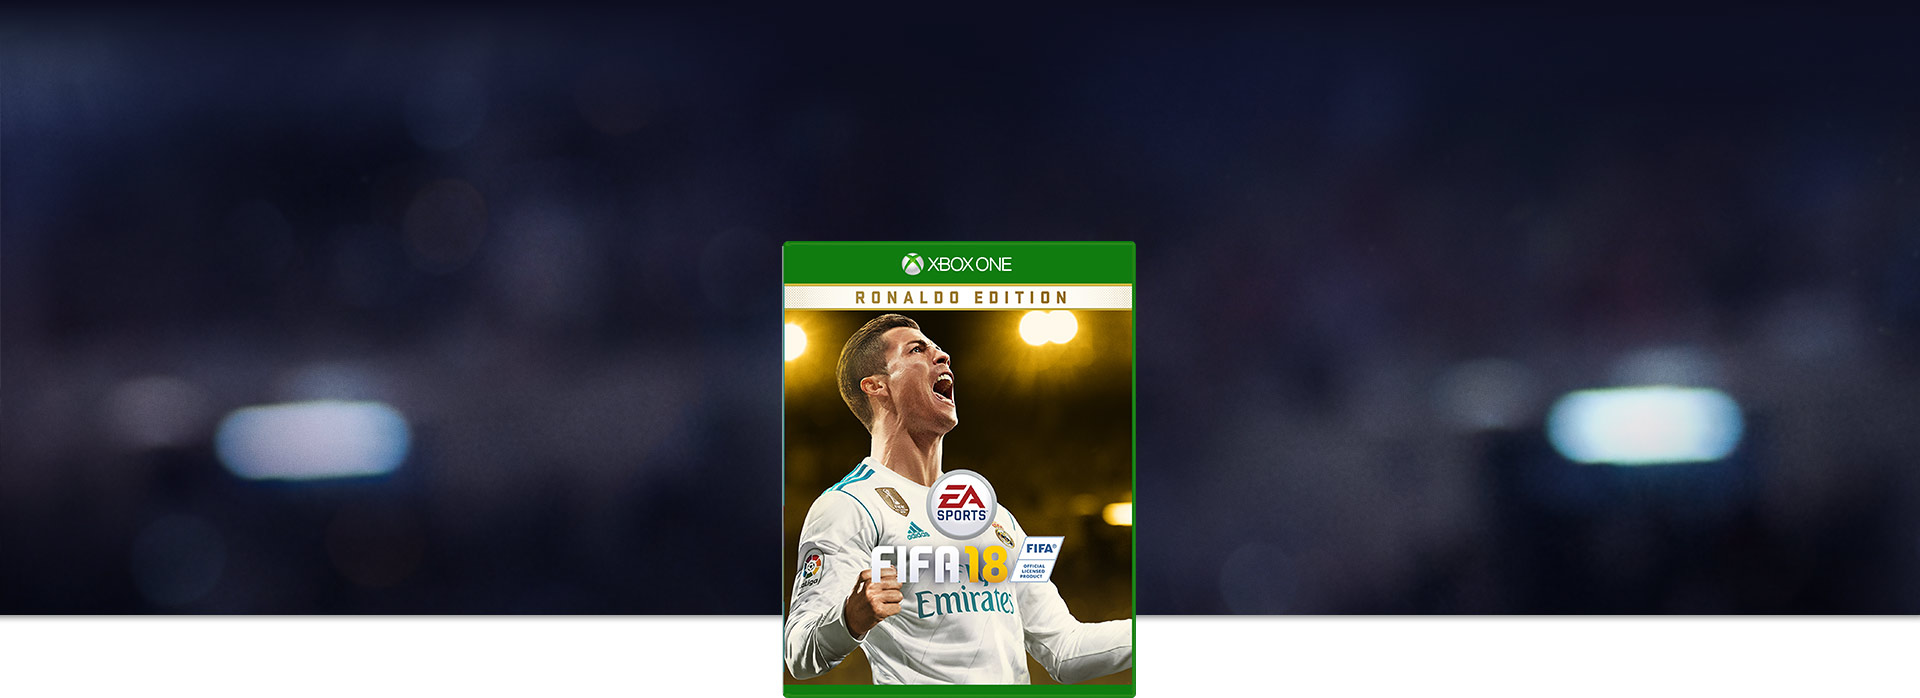 Boxshot του FIFA 18, θολή άποψη των προβολέων του σταδίου